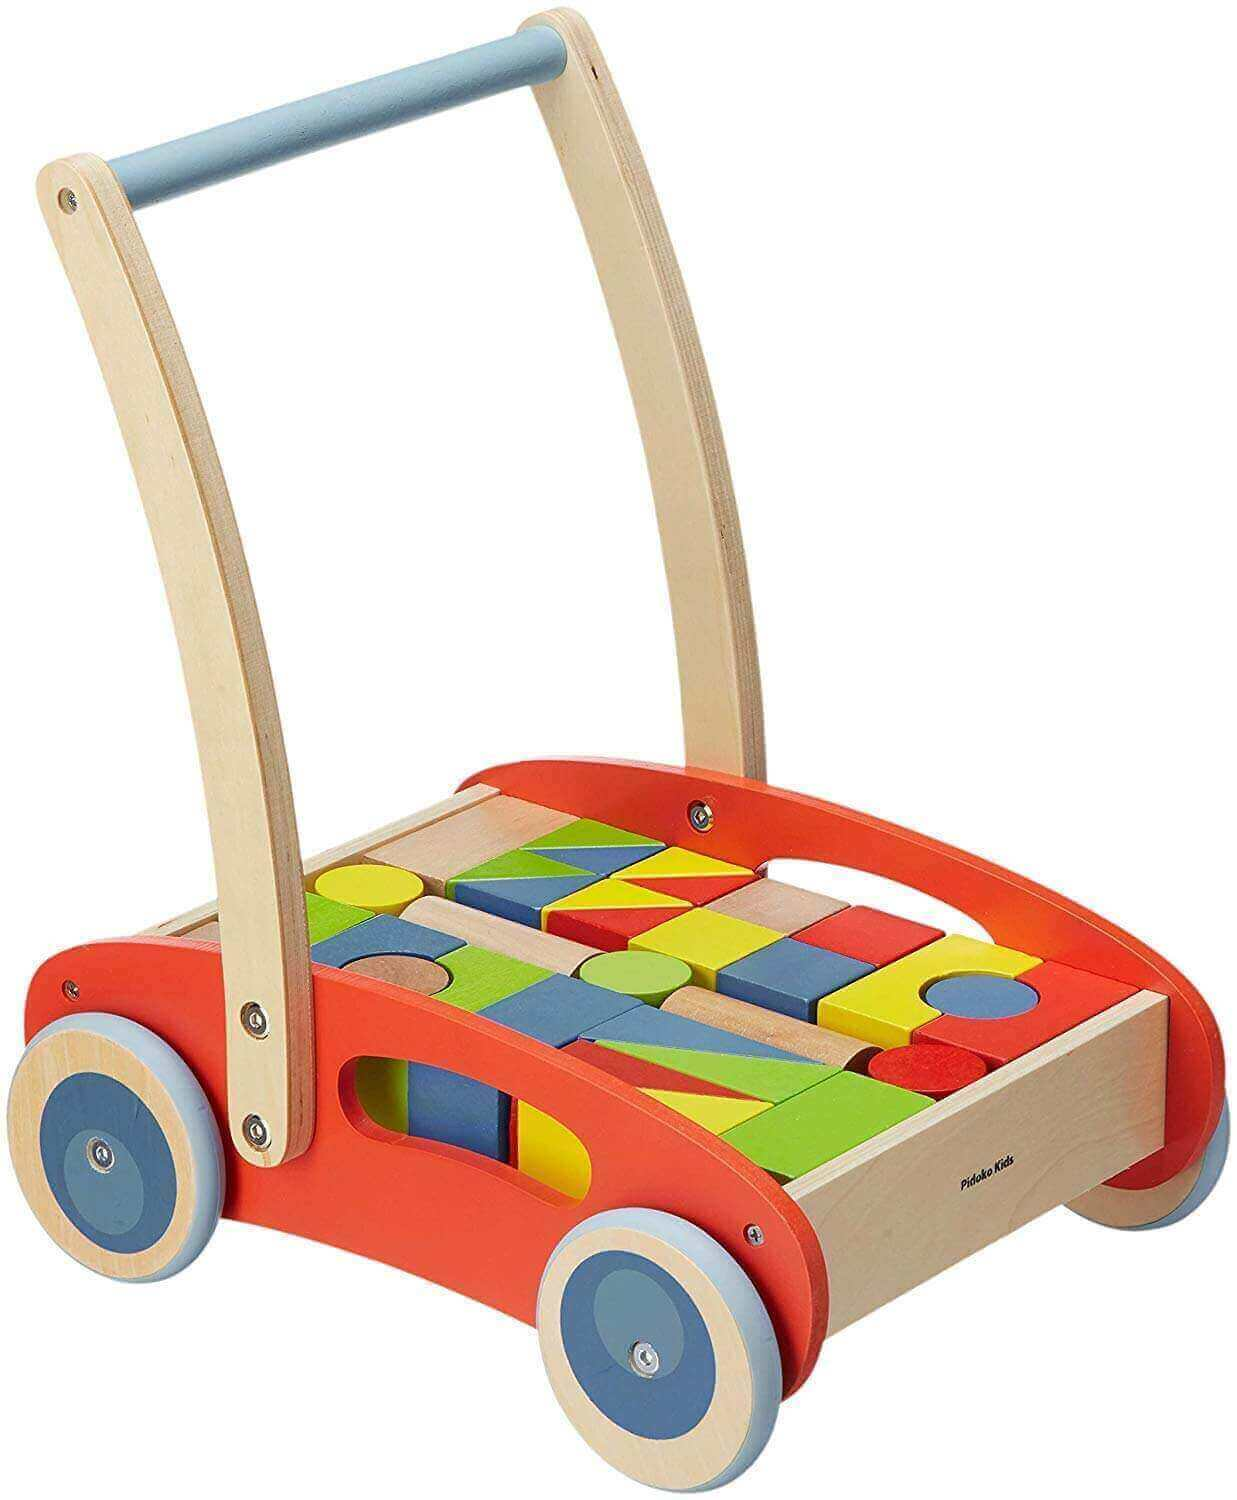 Image of Pidoko Kids Block and Roll Cart on white background